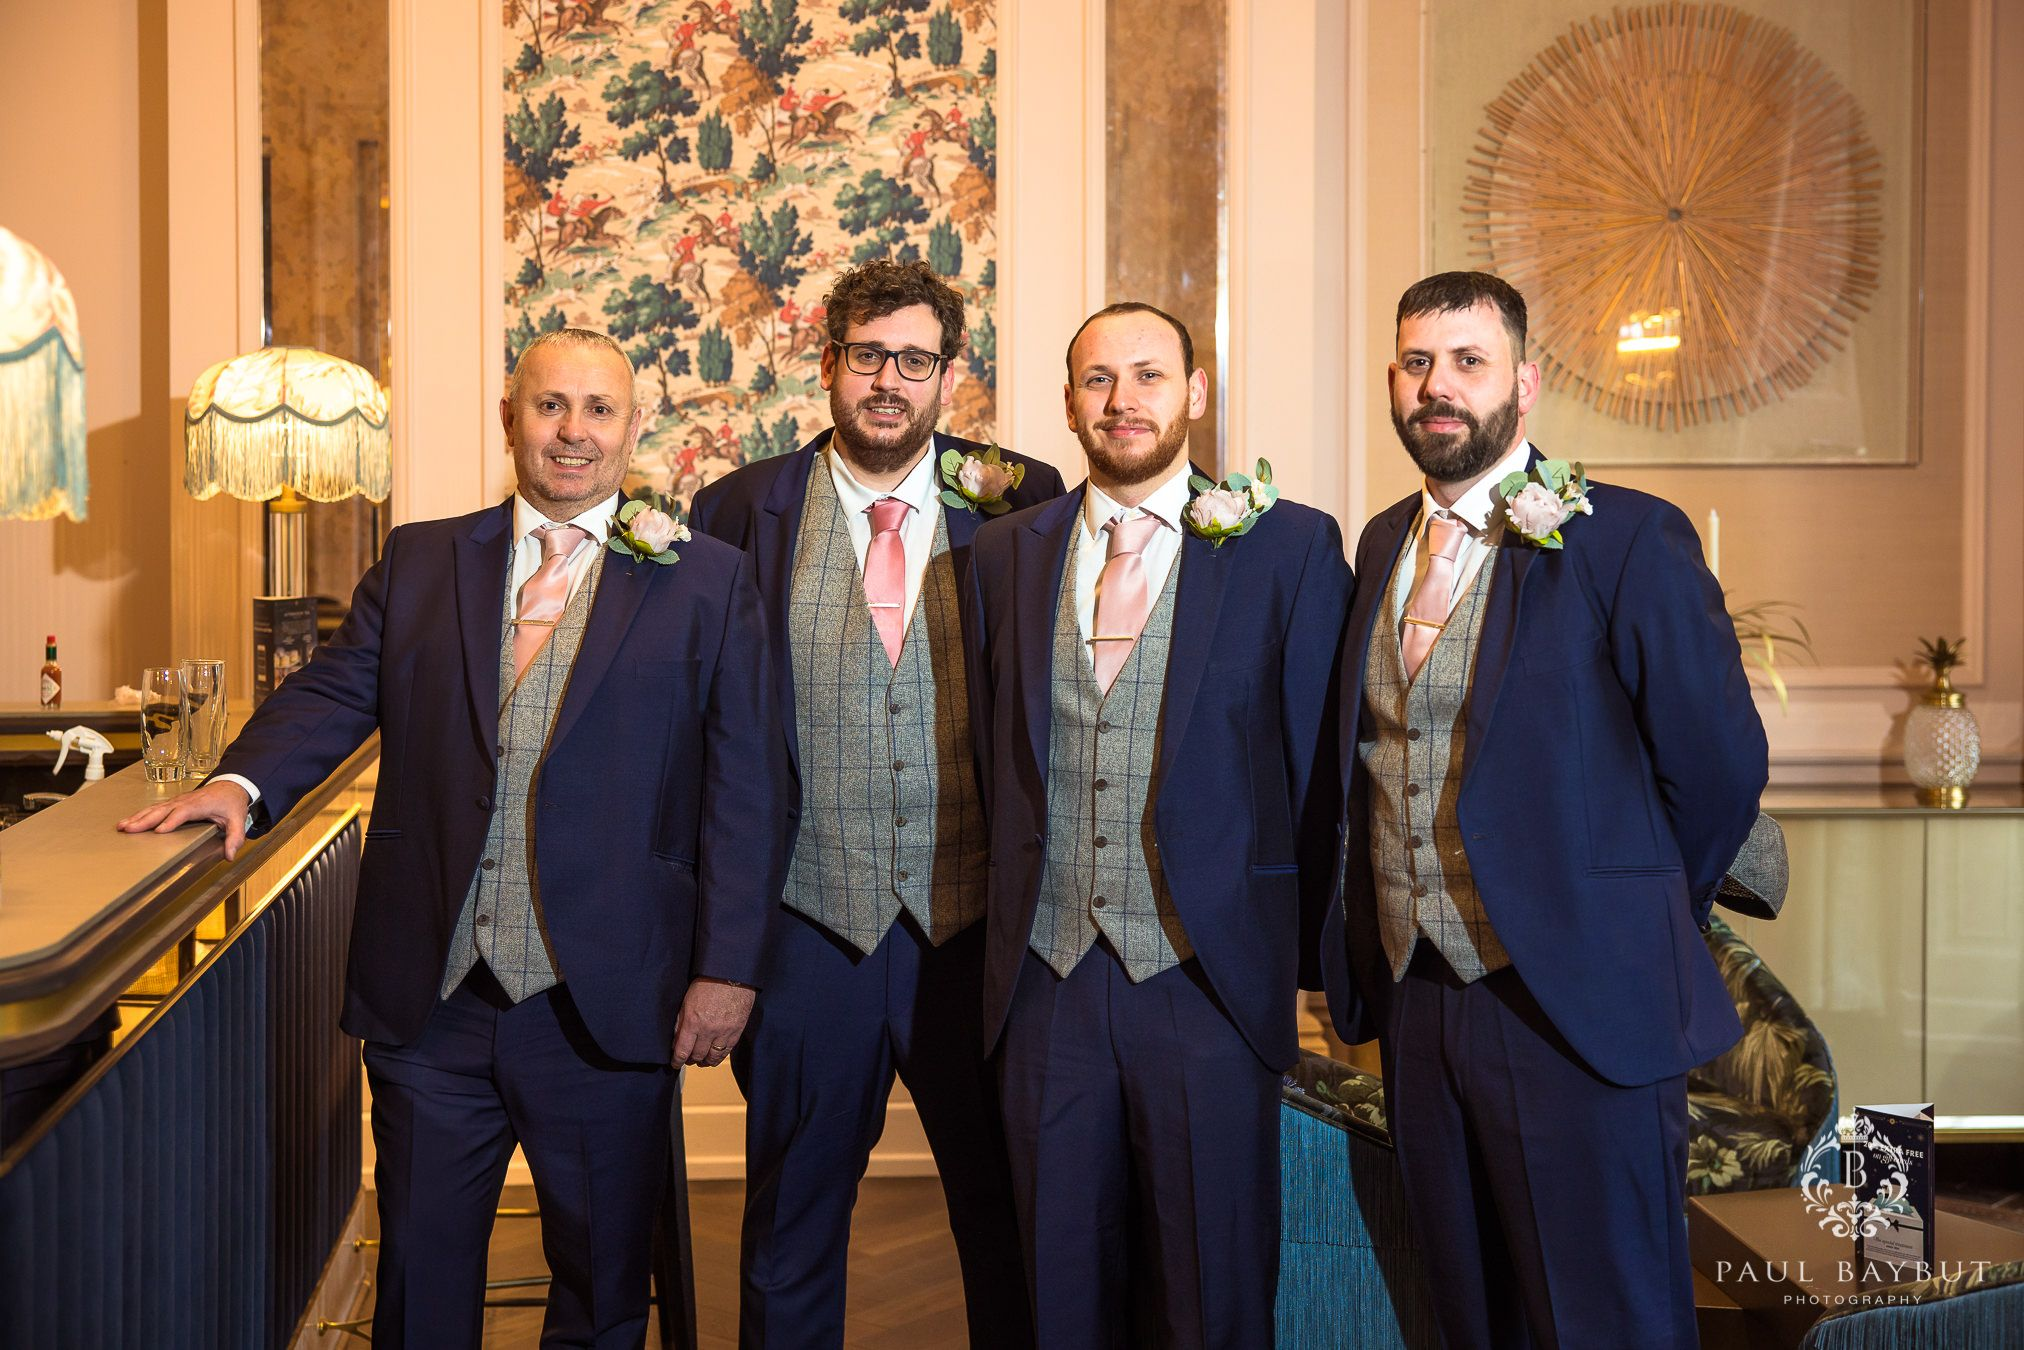 Groom and groomsmen at Mottram Hall pose for a photo by Manchester wedding photographer Paul Baybut